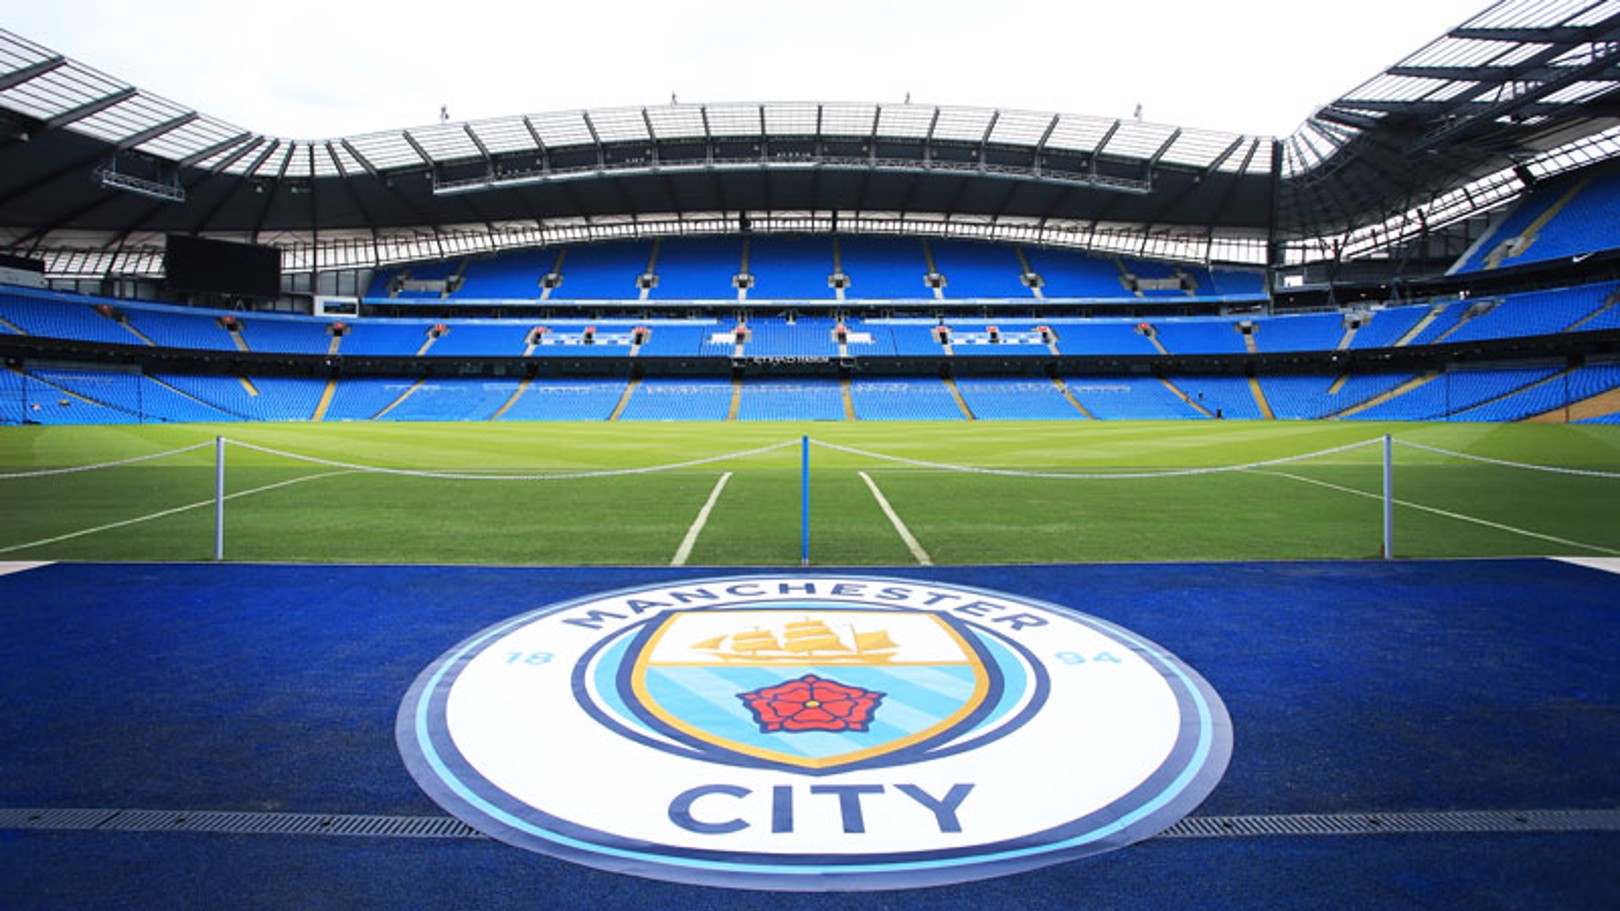 City to discover Carabao Cup third round fate